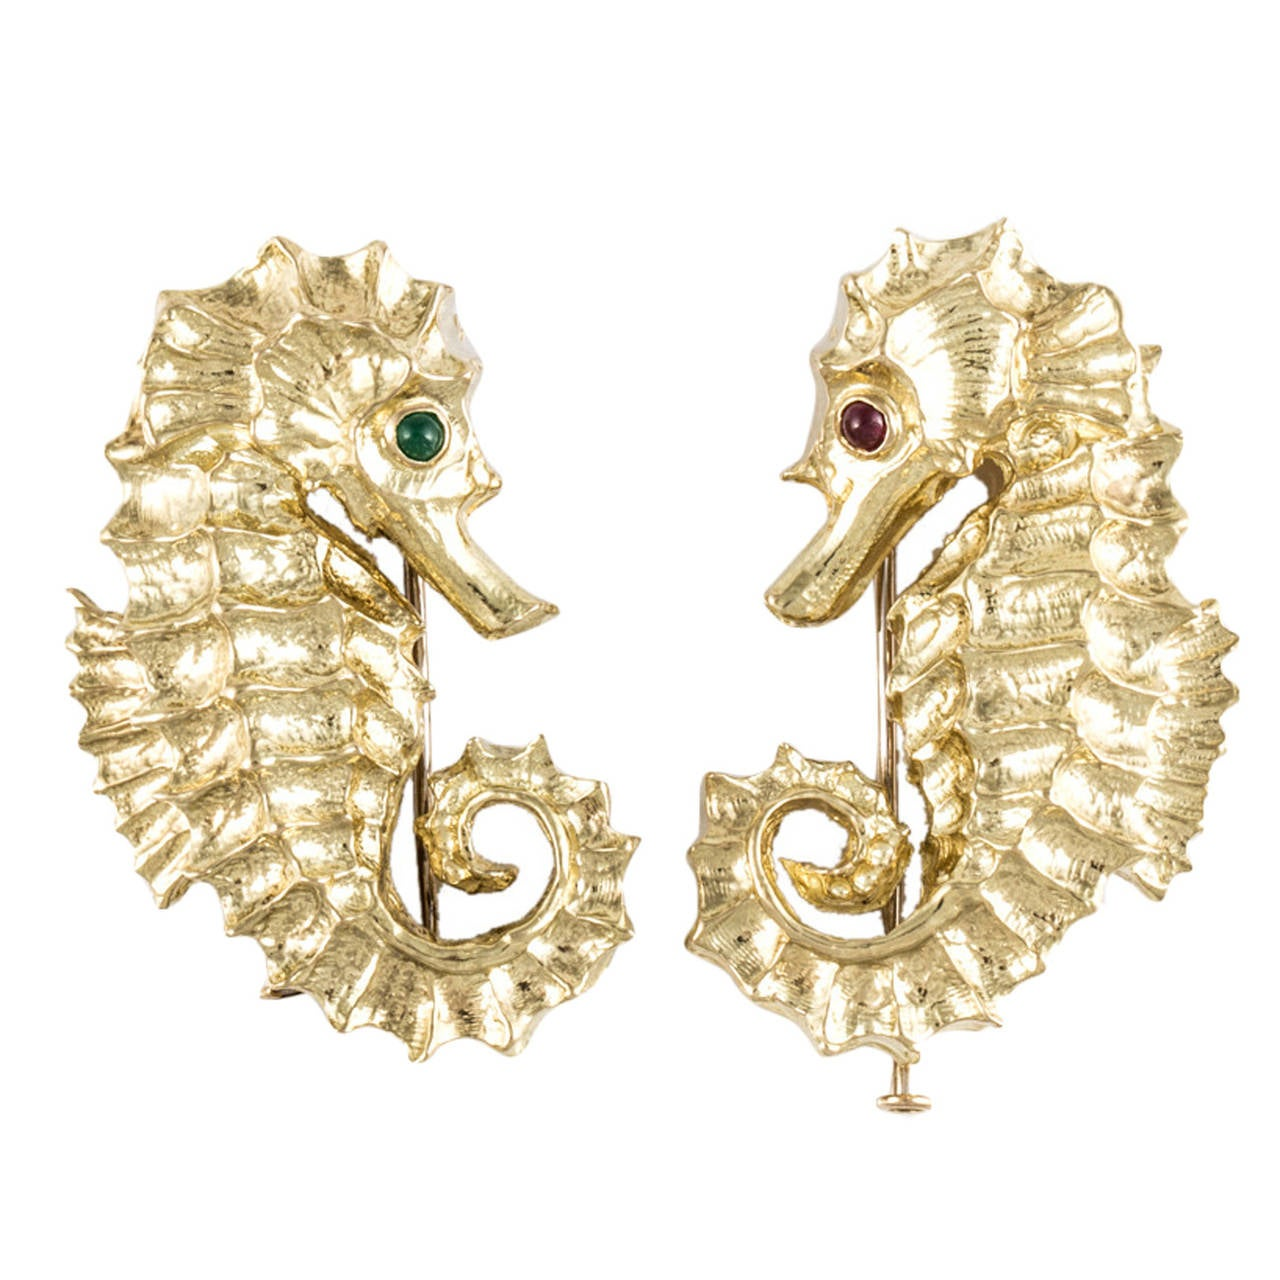 David Webb Pair of Gold Seahorse Pins